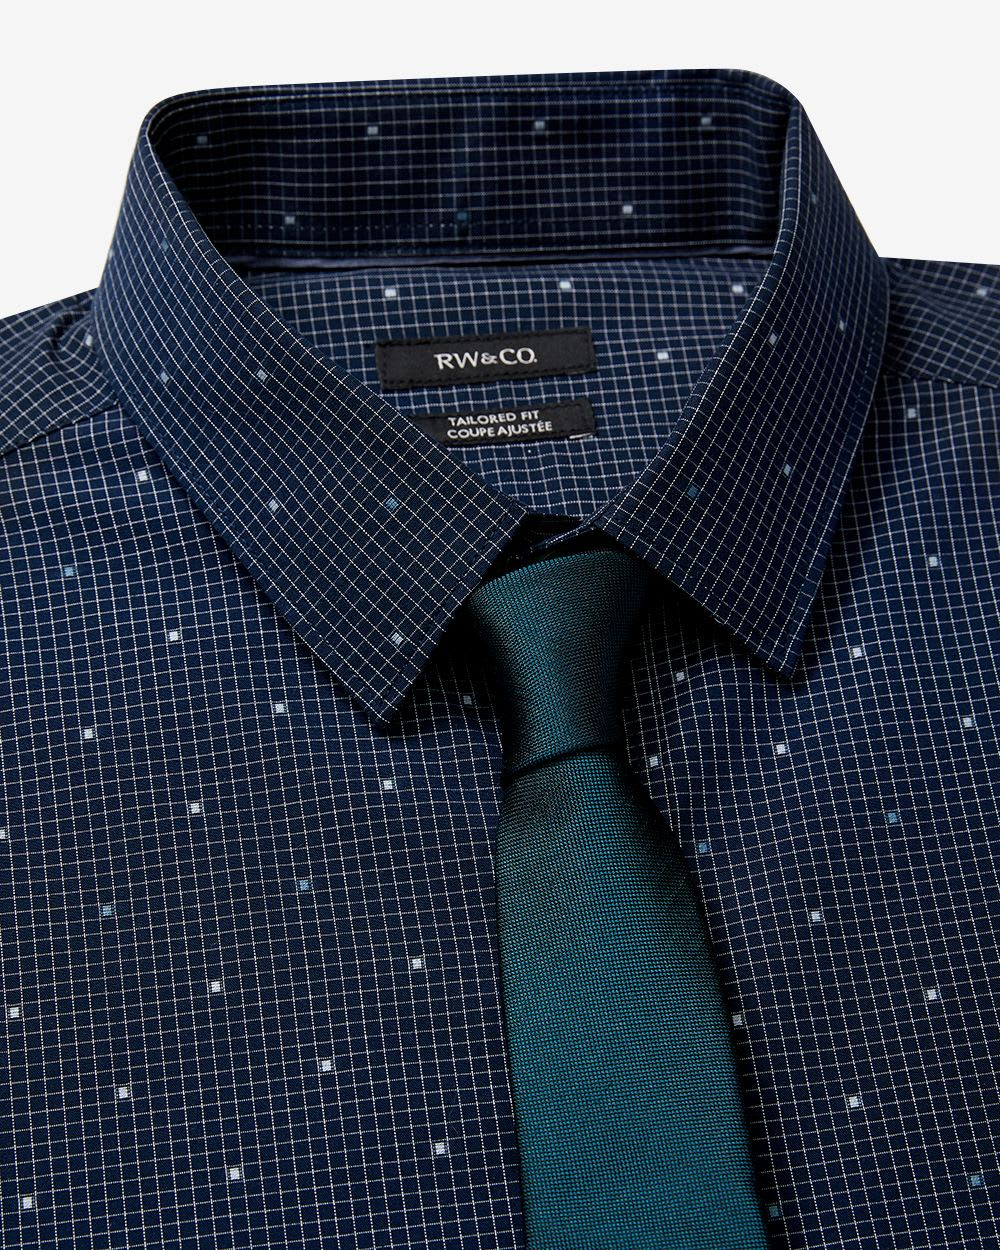 Tailored fit grid and clipping dress shirt rw co for Tailored fit dress shirts